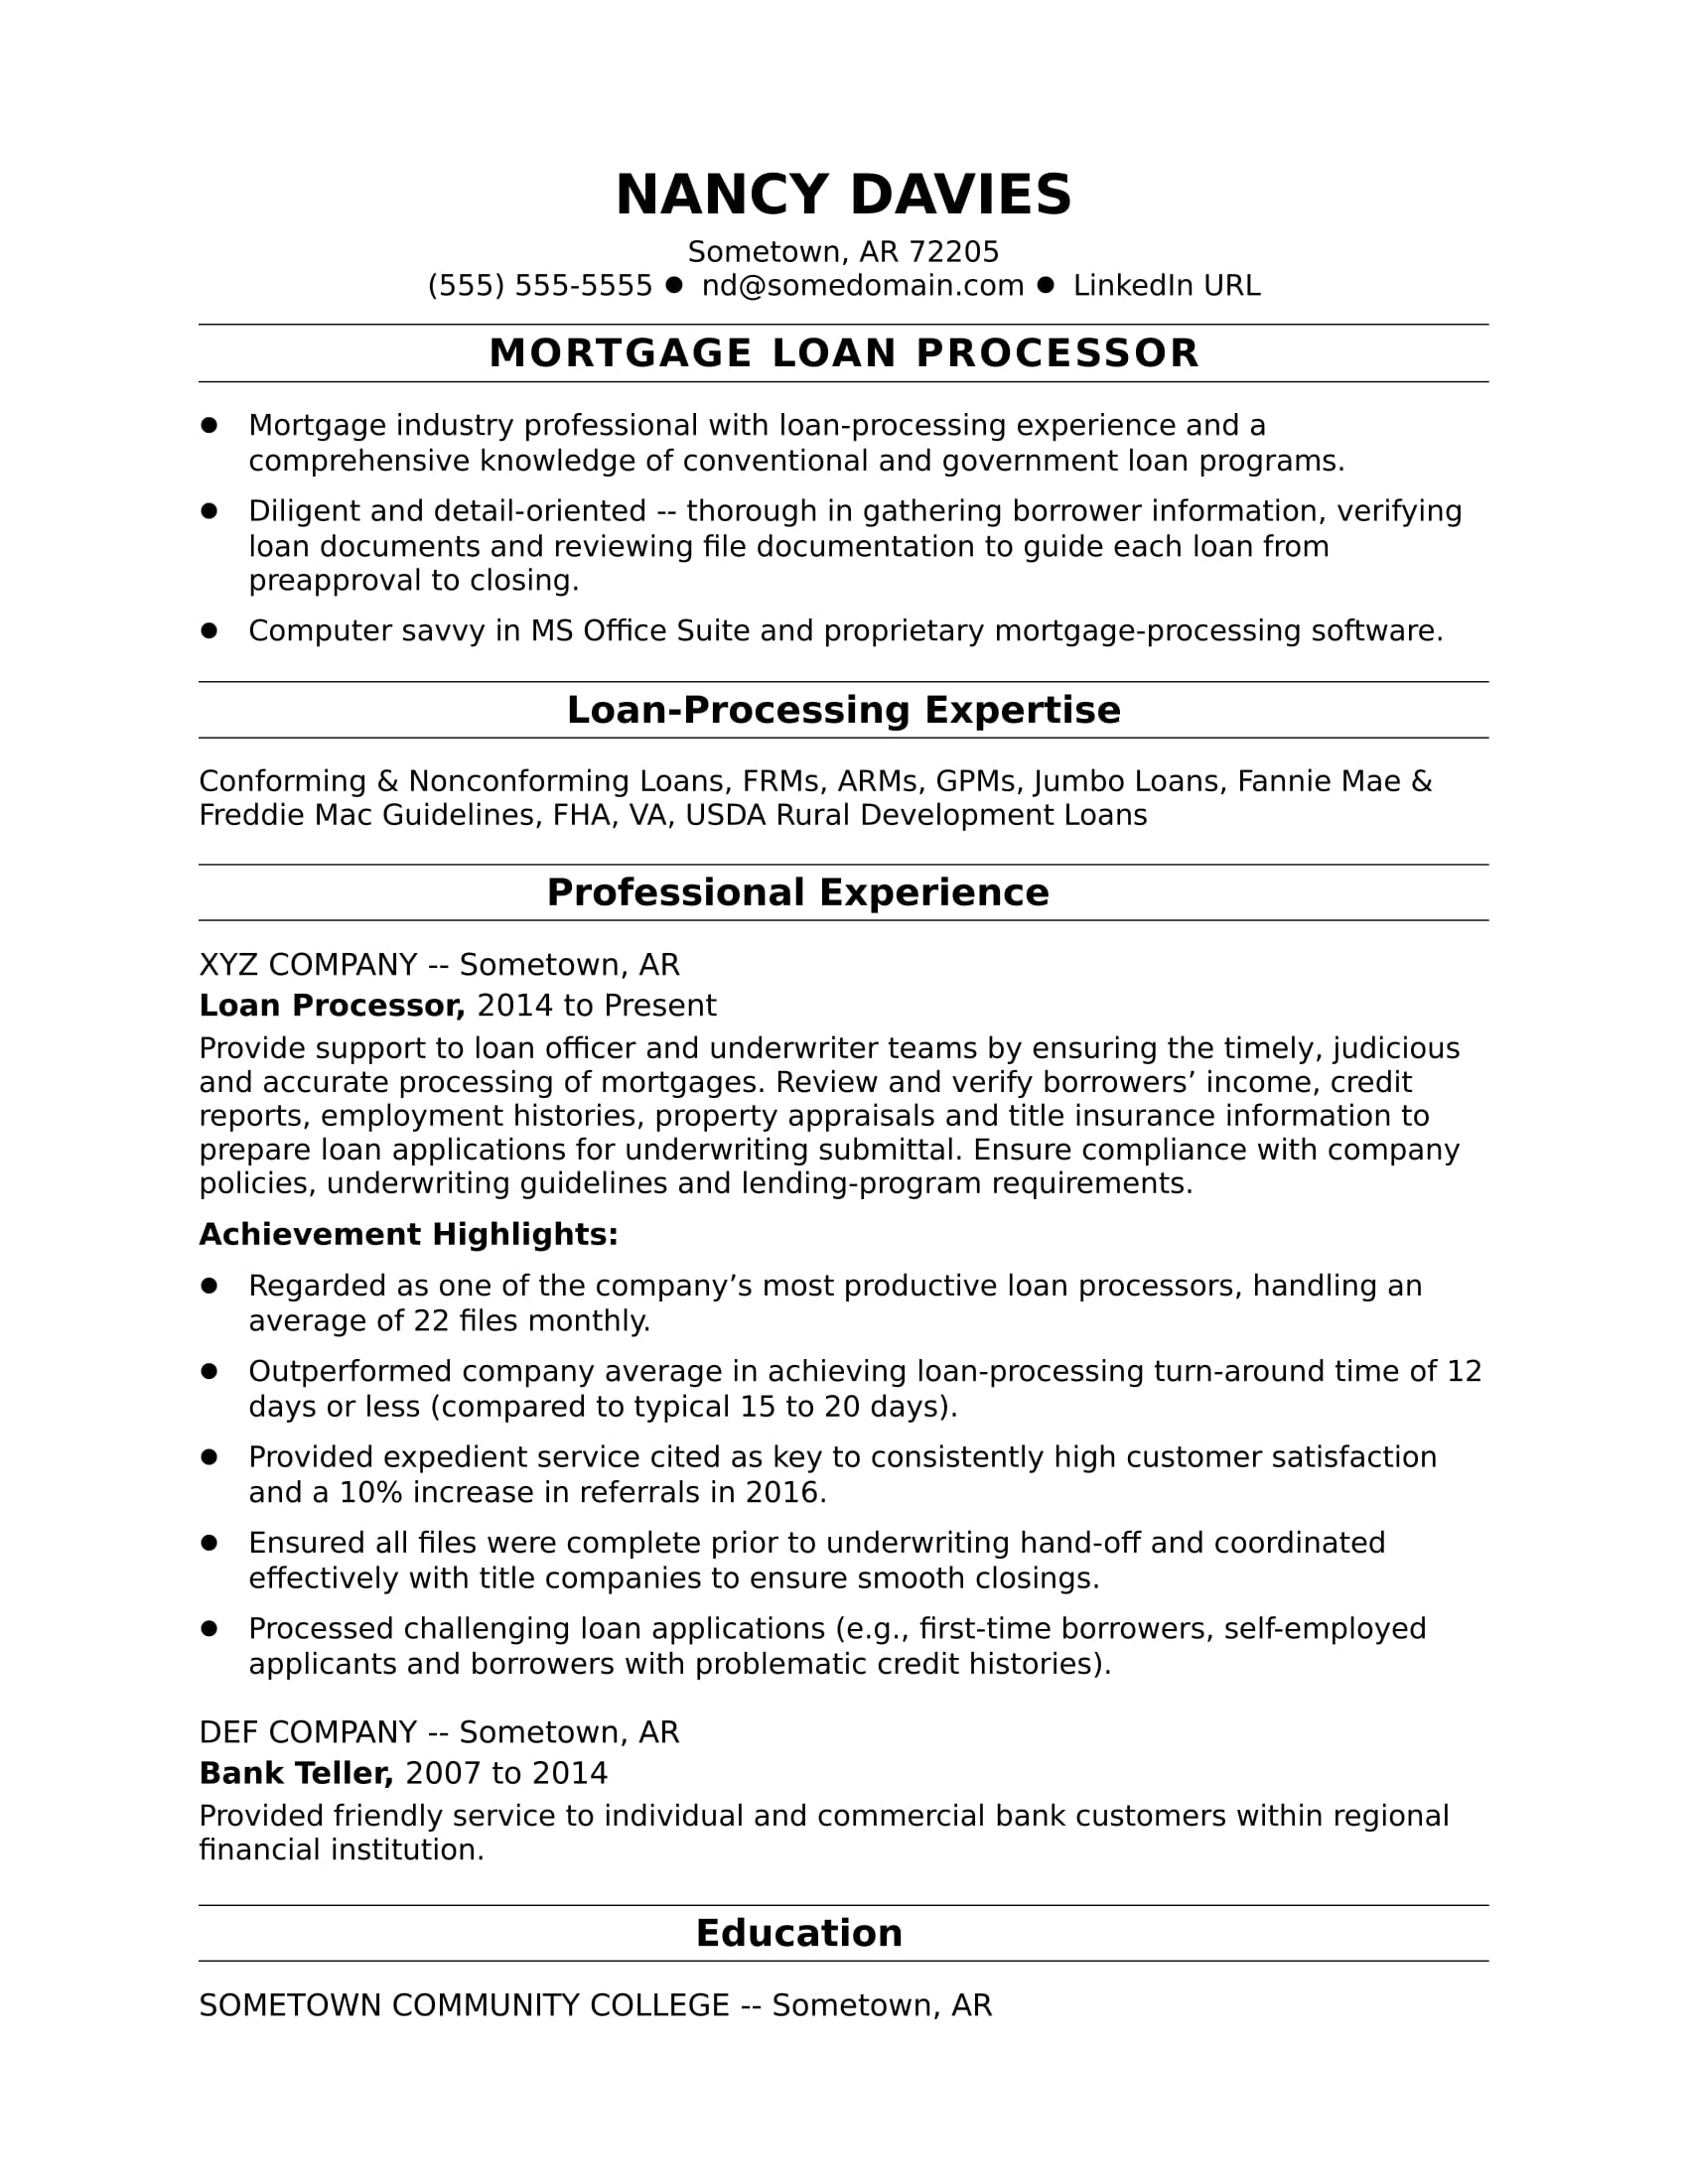 sample resume for a mortgage loan processor - Data Processor Resume